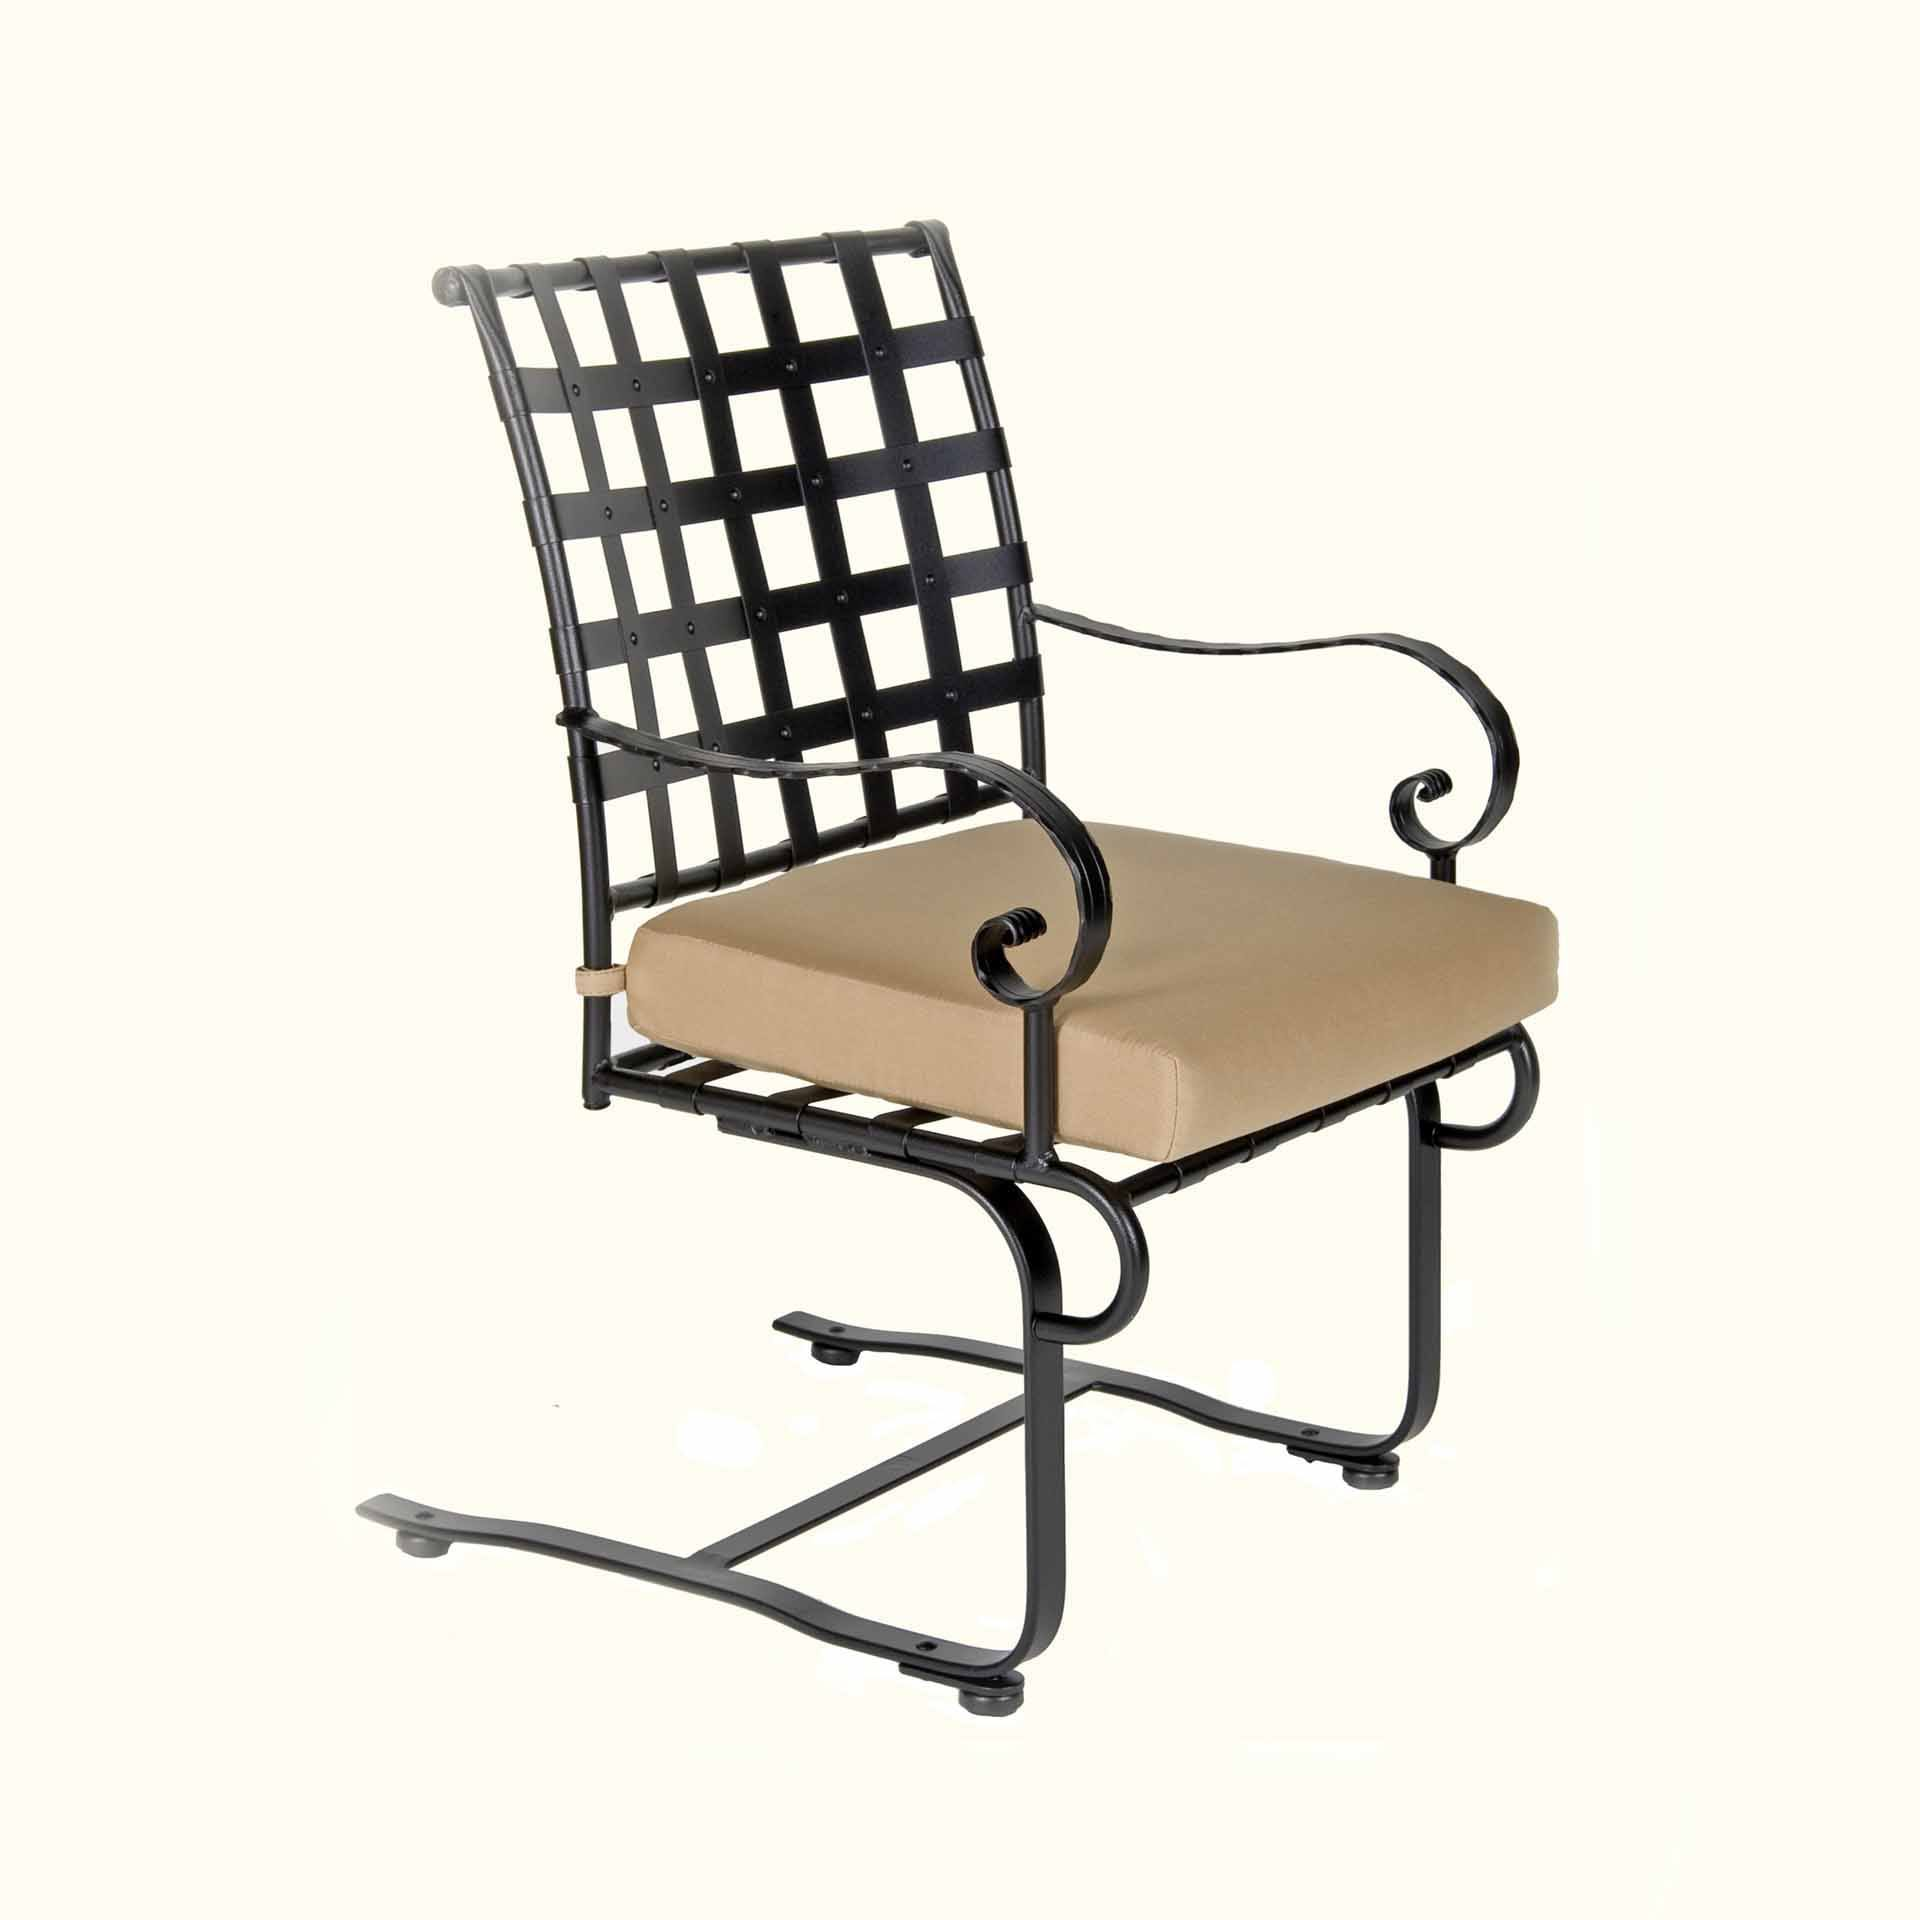 love swing chair reindeer christmas covers ow lee classico spring base dining arm leisure living